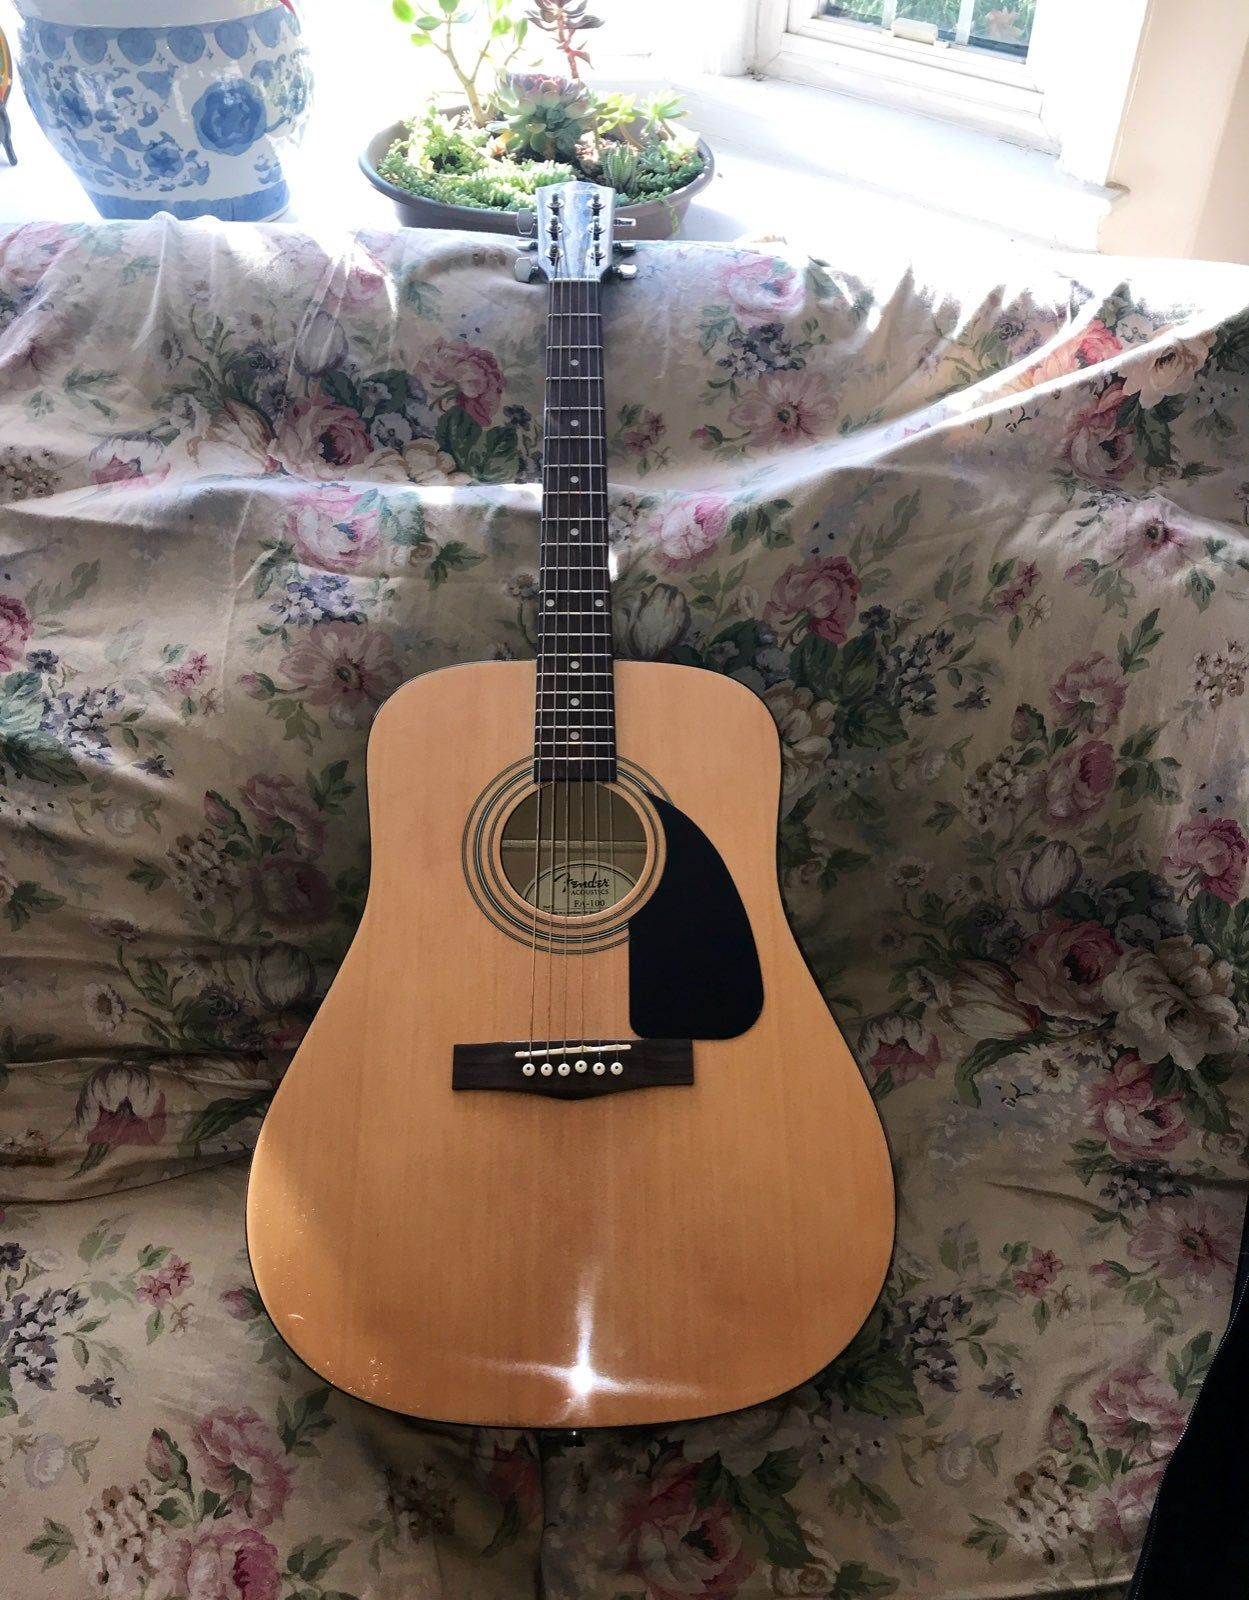 A New Fender Acoustic Guitar It Was Never Used Sounds Great As Well Fender Acoustic Guitar Fender Acoustic Guitar